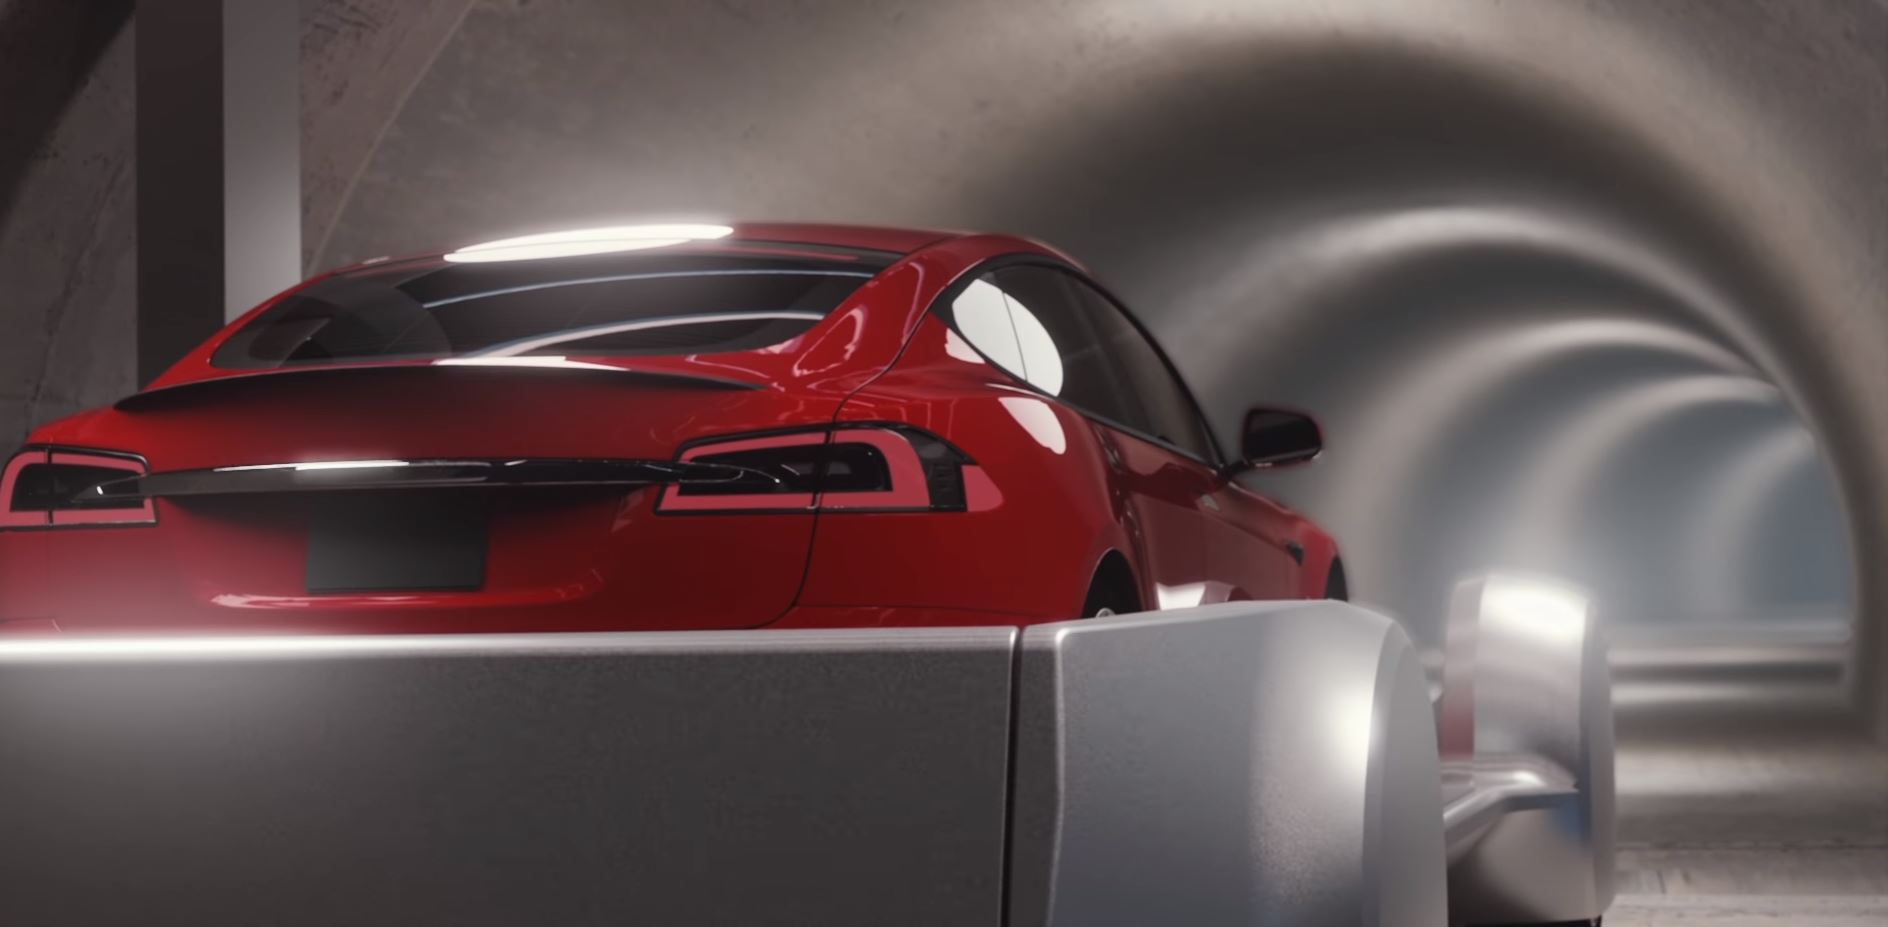 Elon Musk wants to build a traffic-skipping tunnel utopia